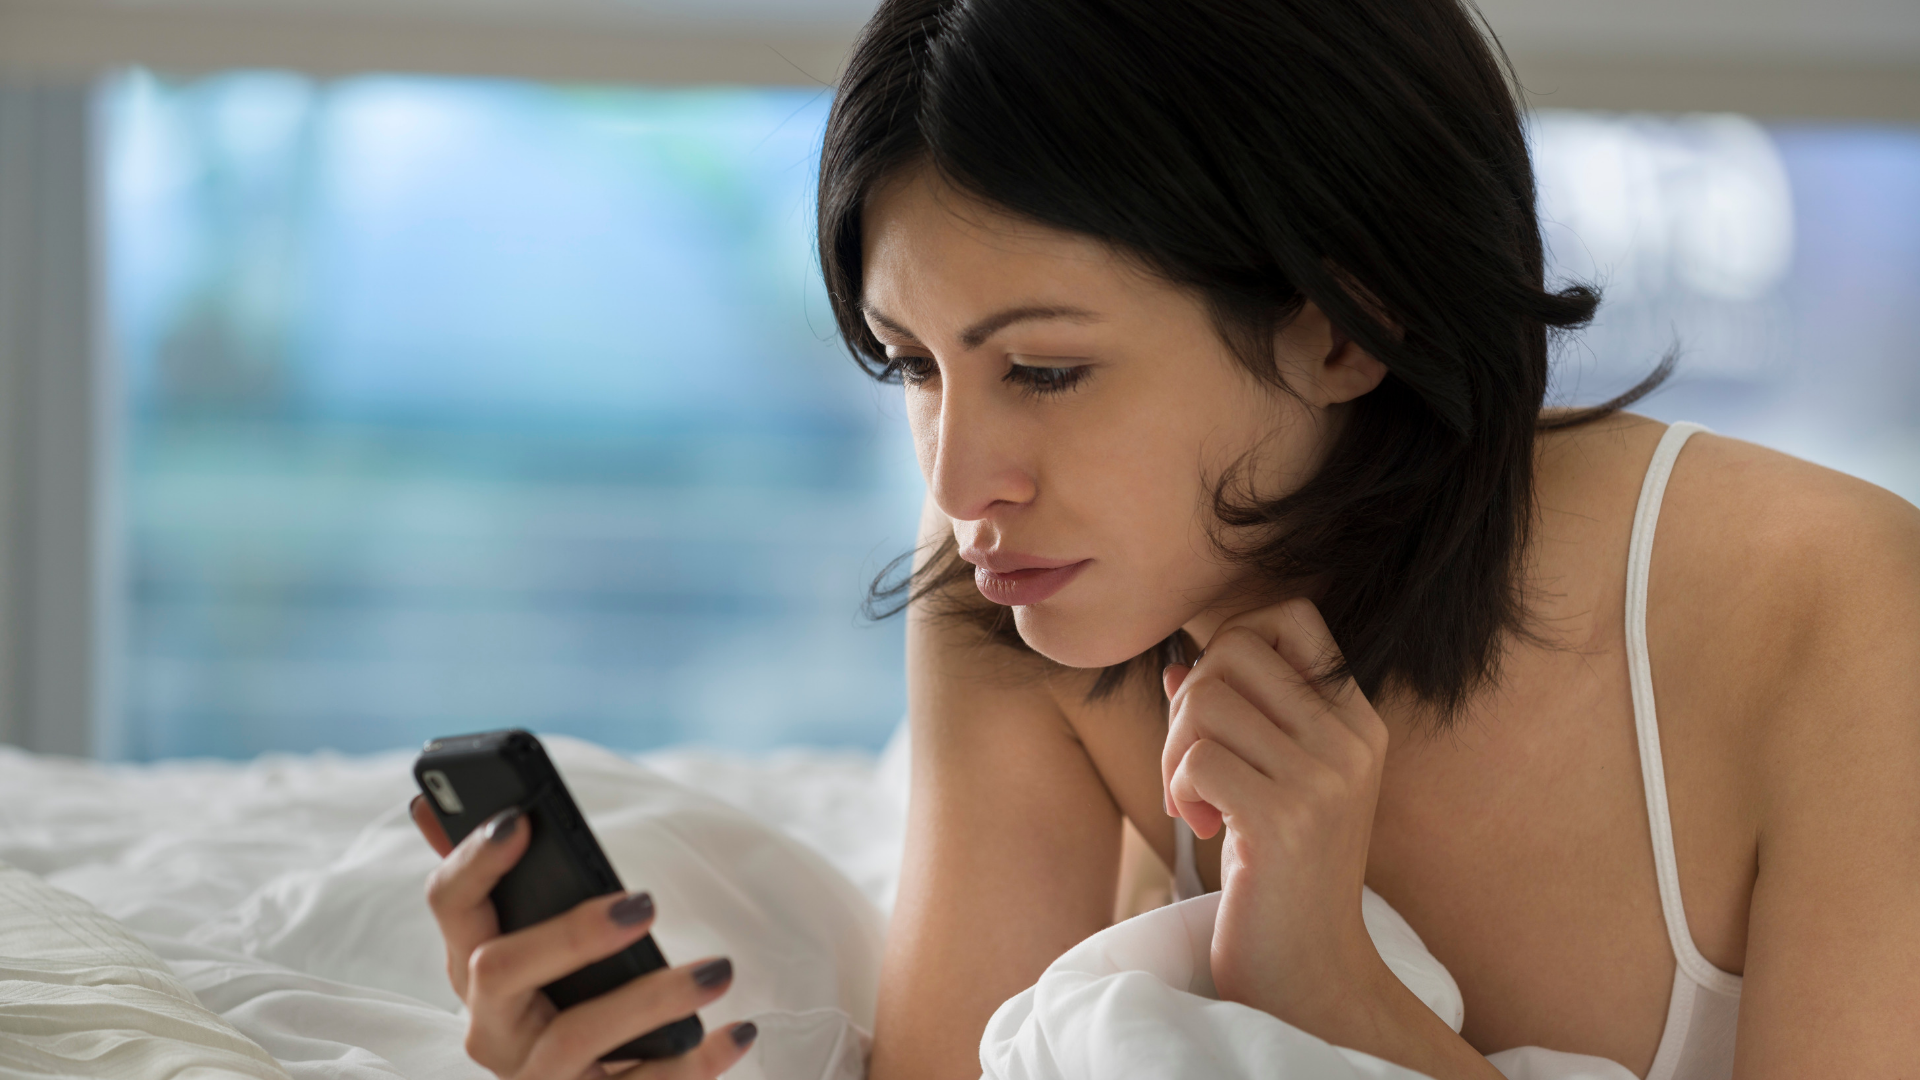 woman checking her phone in the morning